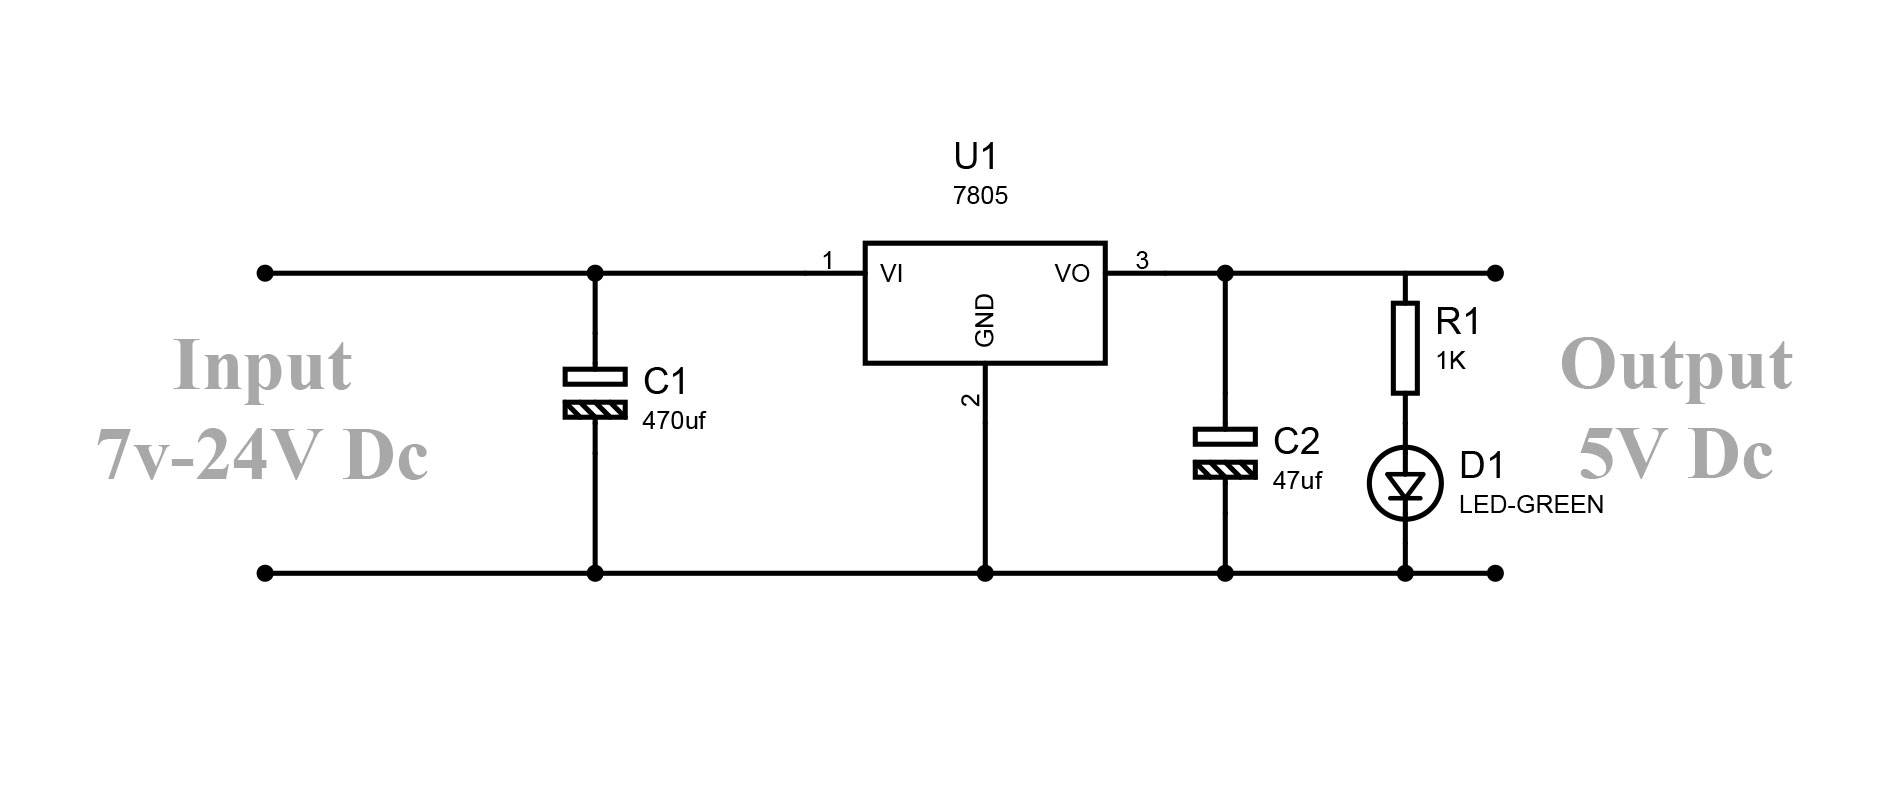 How To Convert 9v To 5v Regulator Circuit